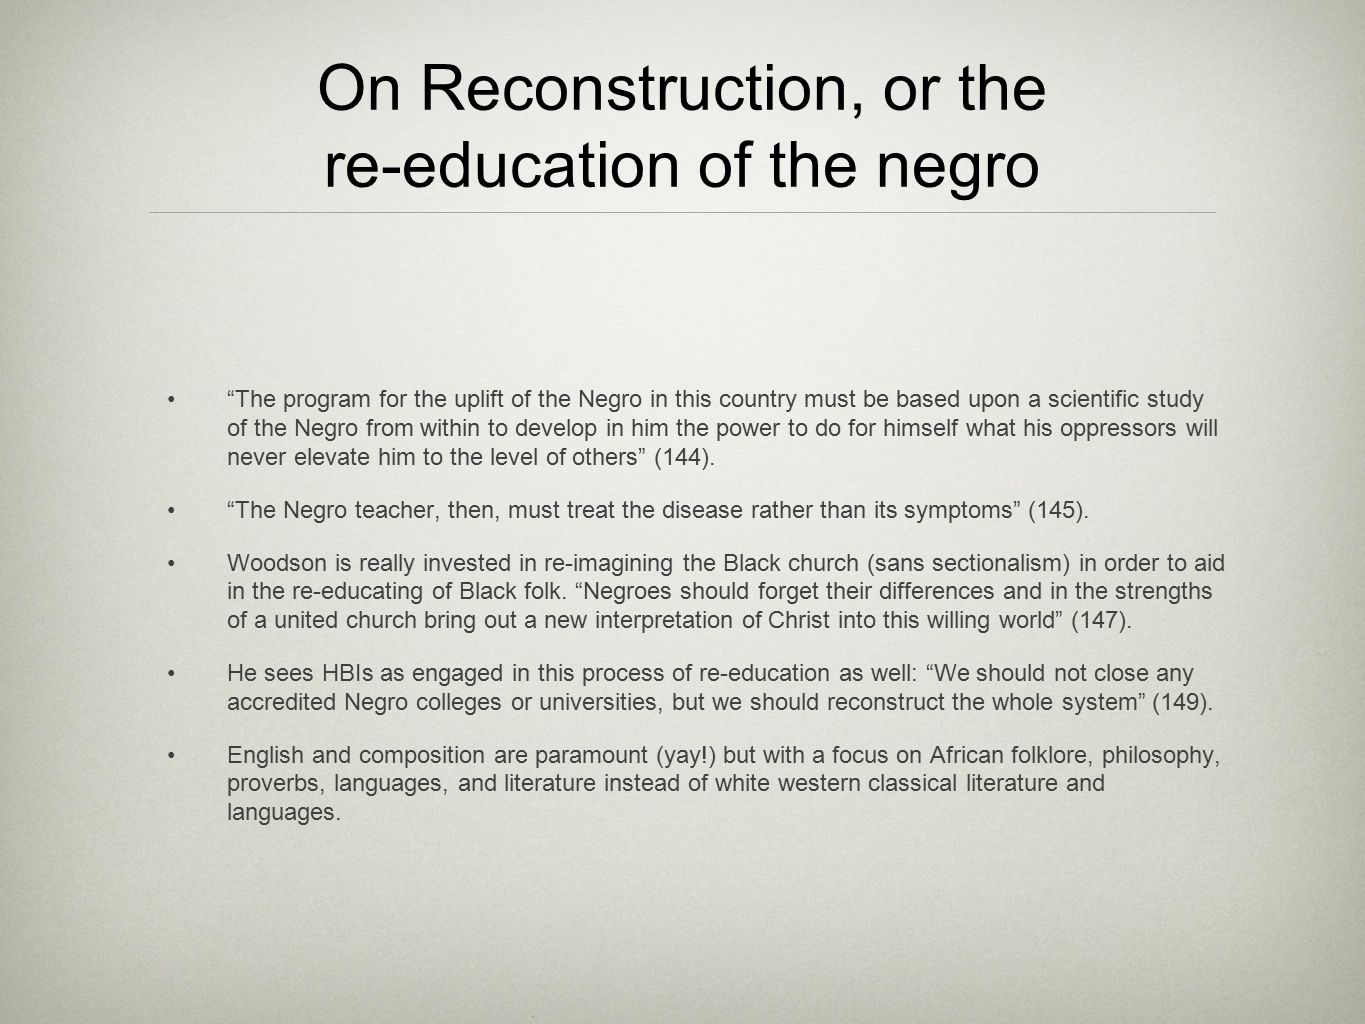 On Reconstruction, or the re-education of the negro Woodson is most interested in Blacks learning their own histories, indeed, his program of education includes studying also the history of races and nations which have been purposely ignored (154).